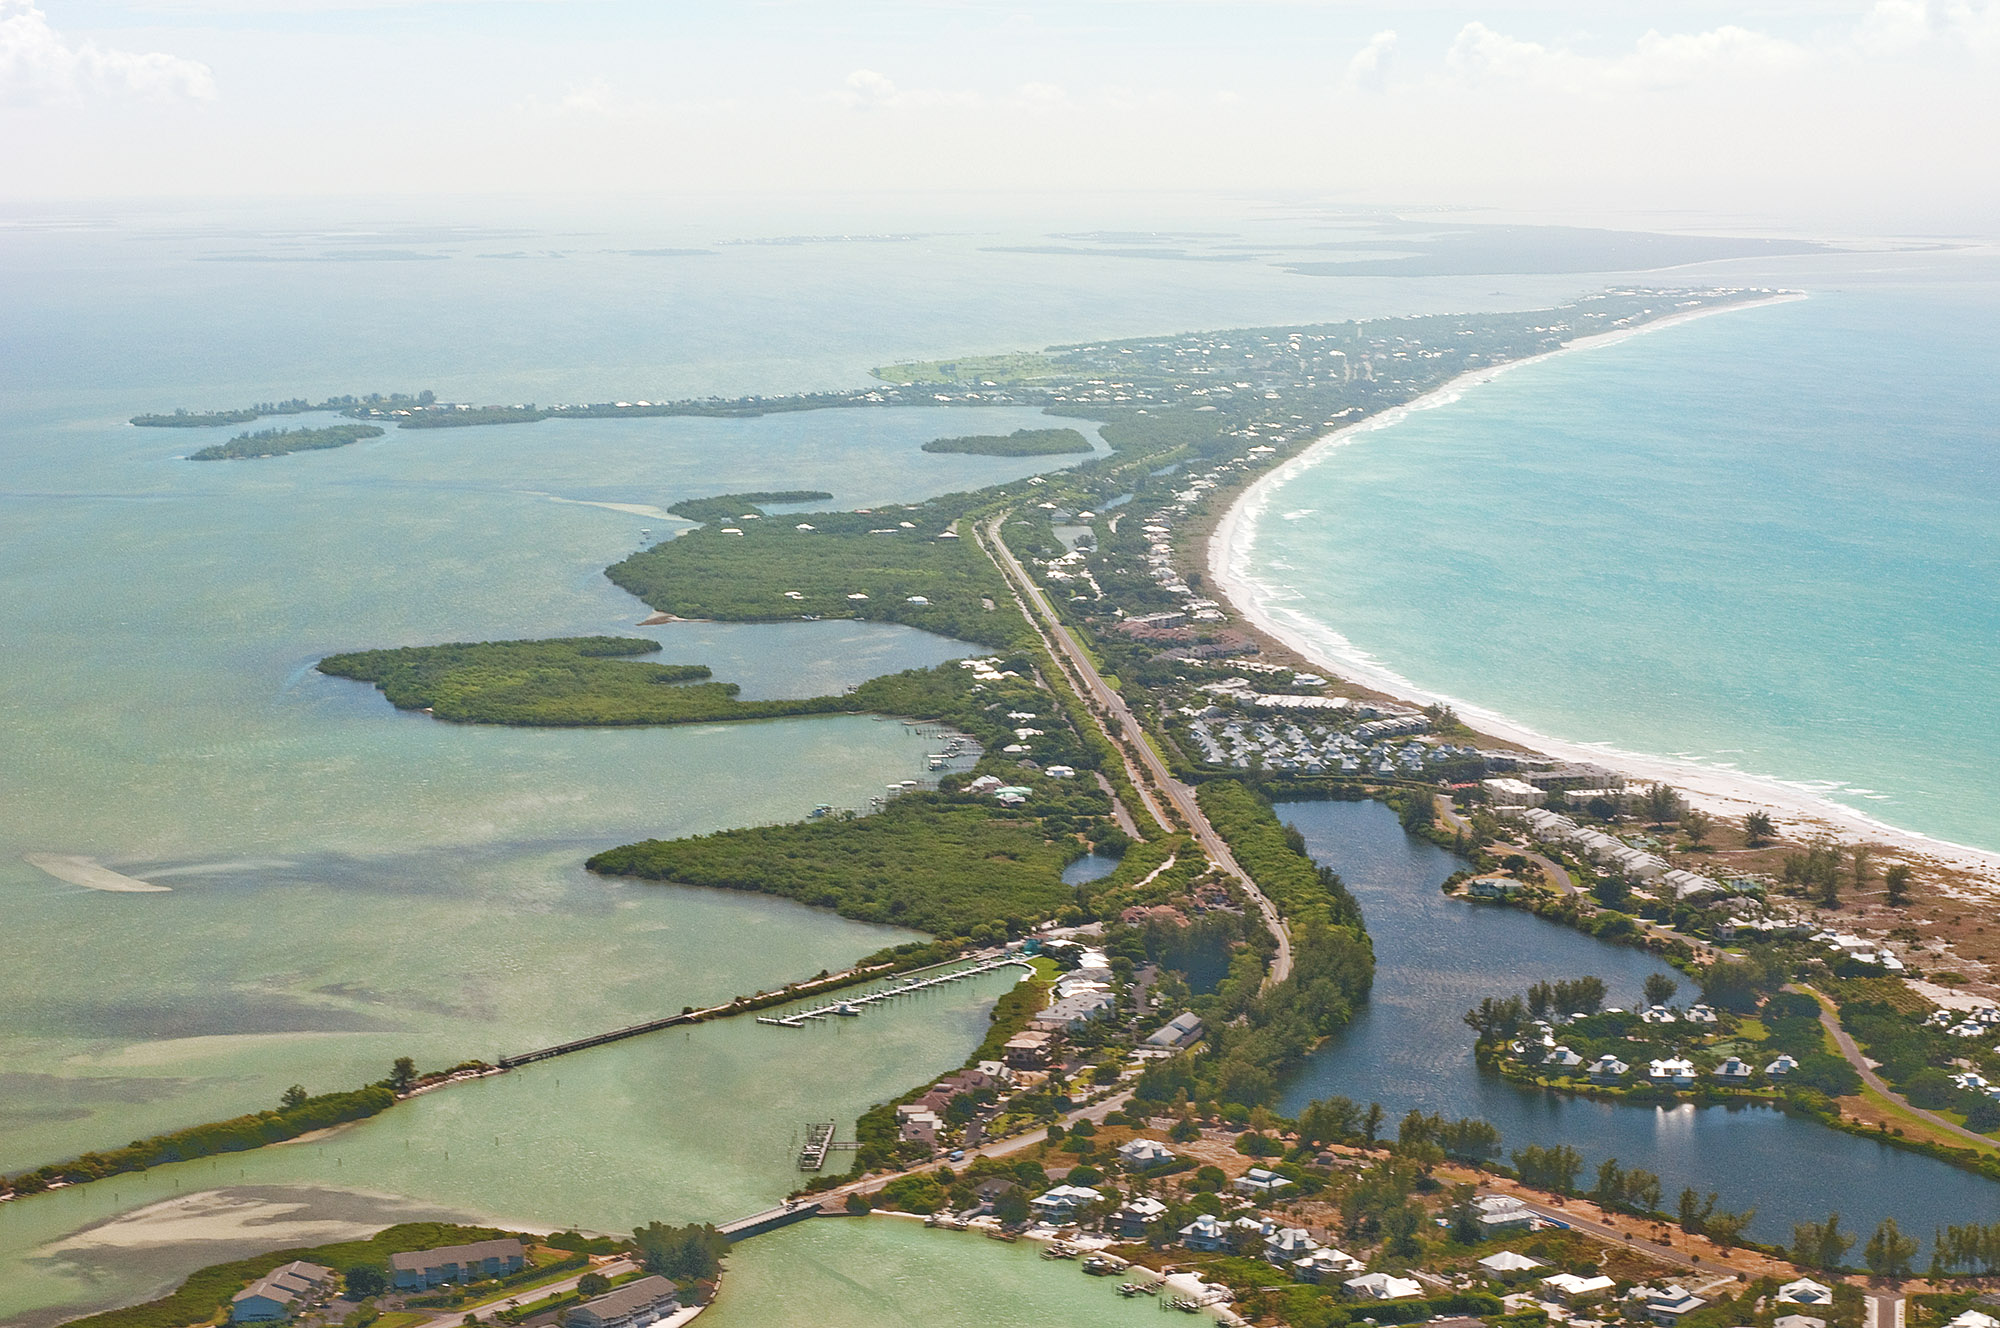 Aerial view of Gasparilla Island and Cayo Costa and the surrounding waters